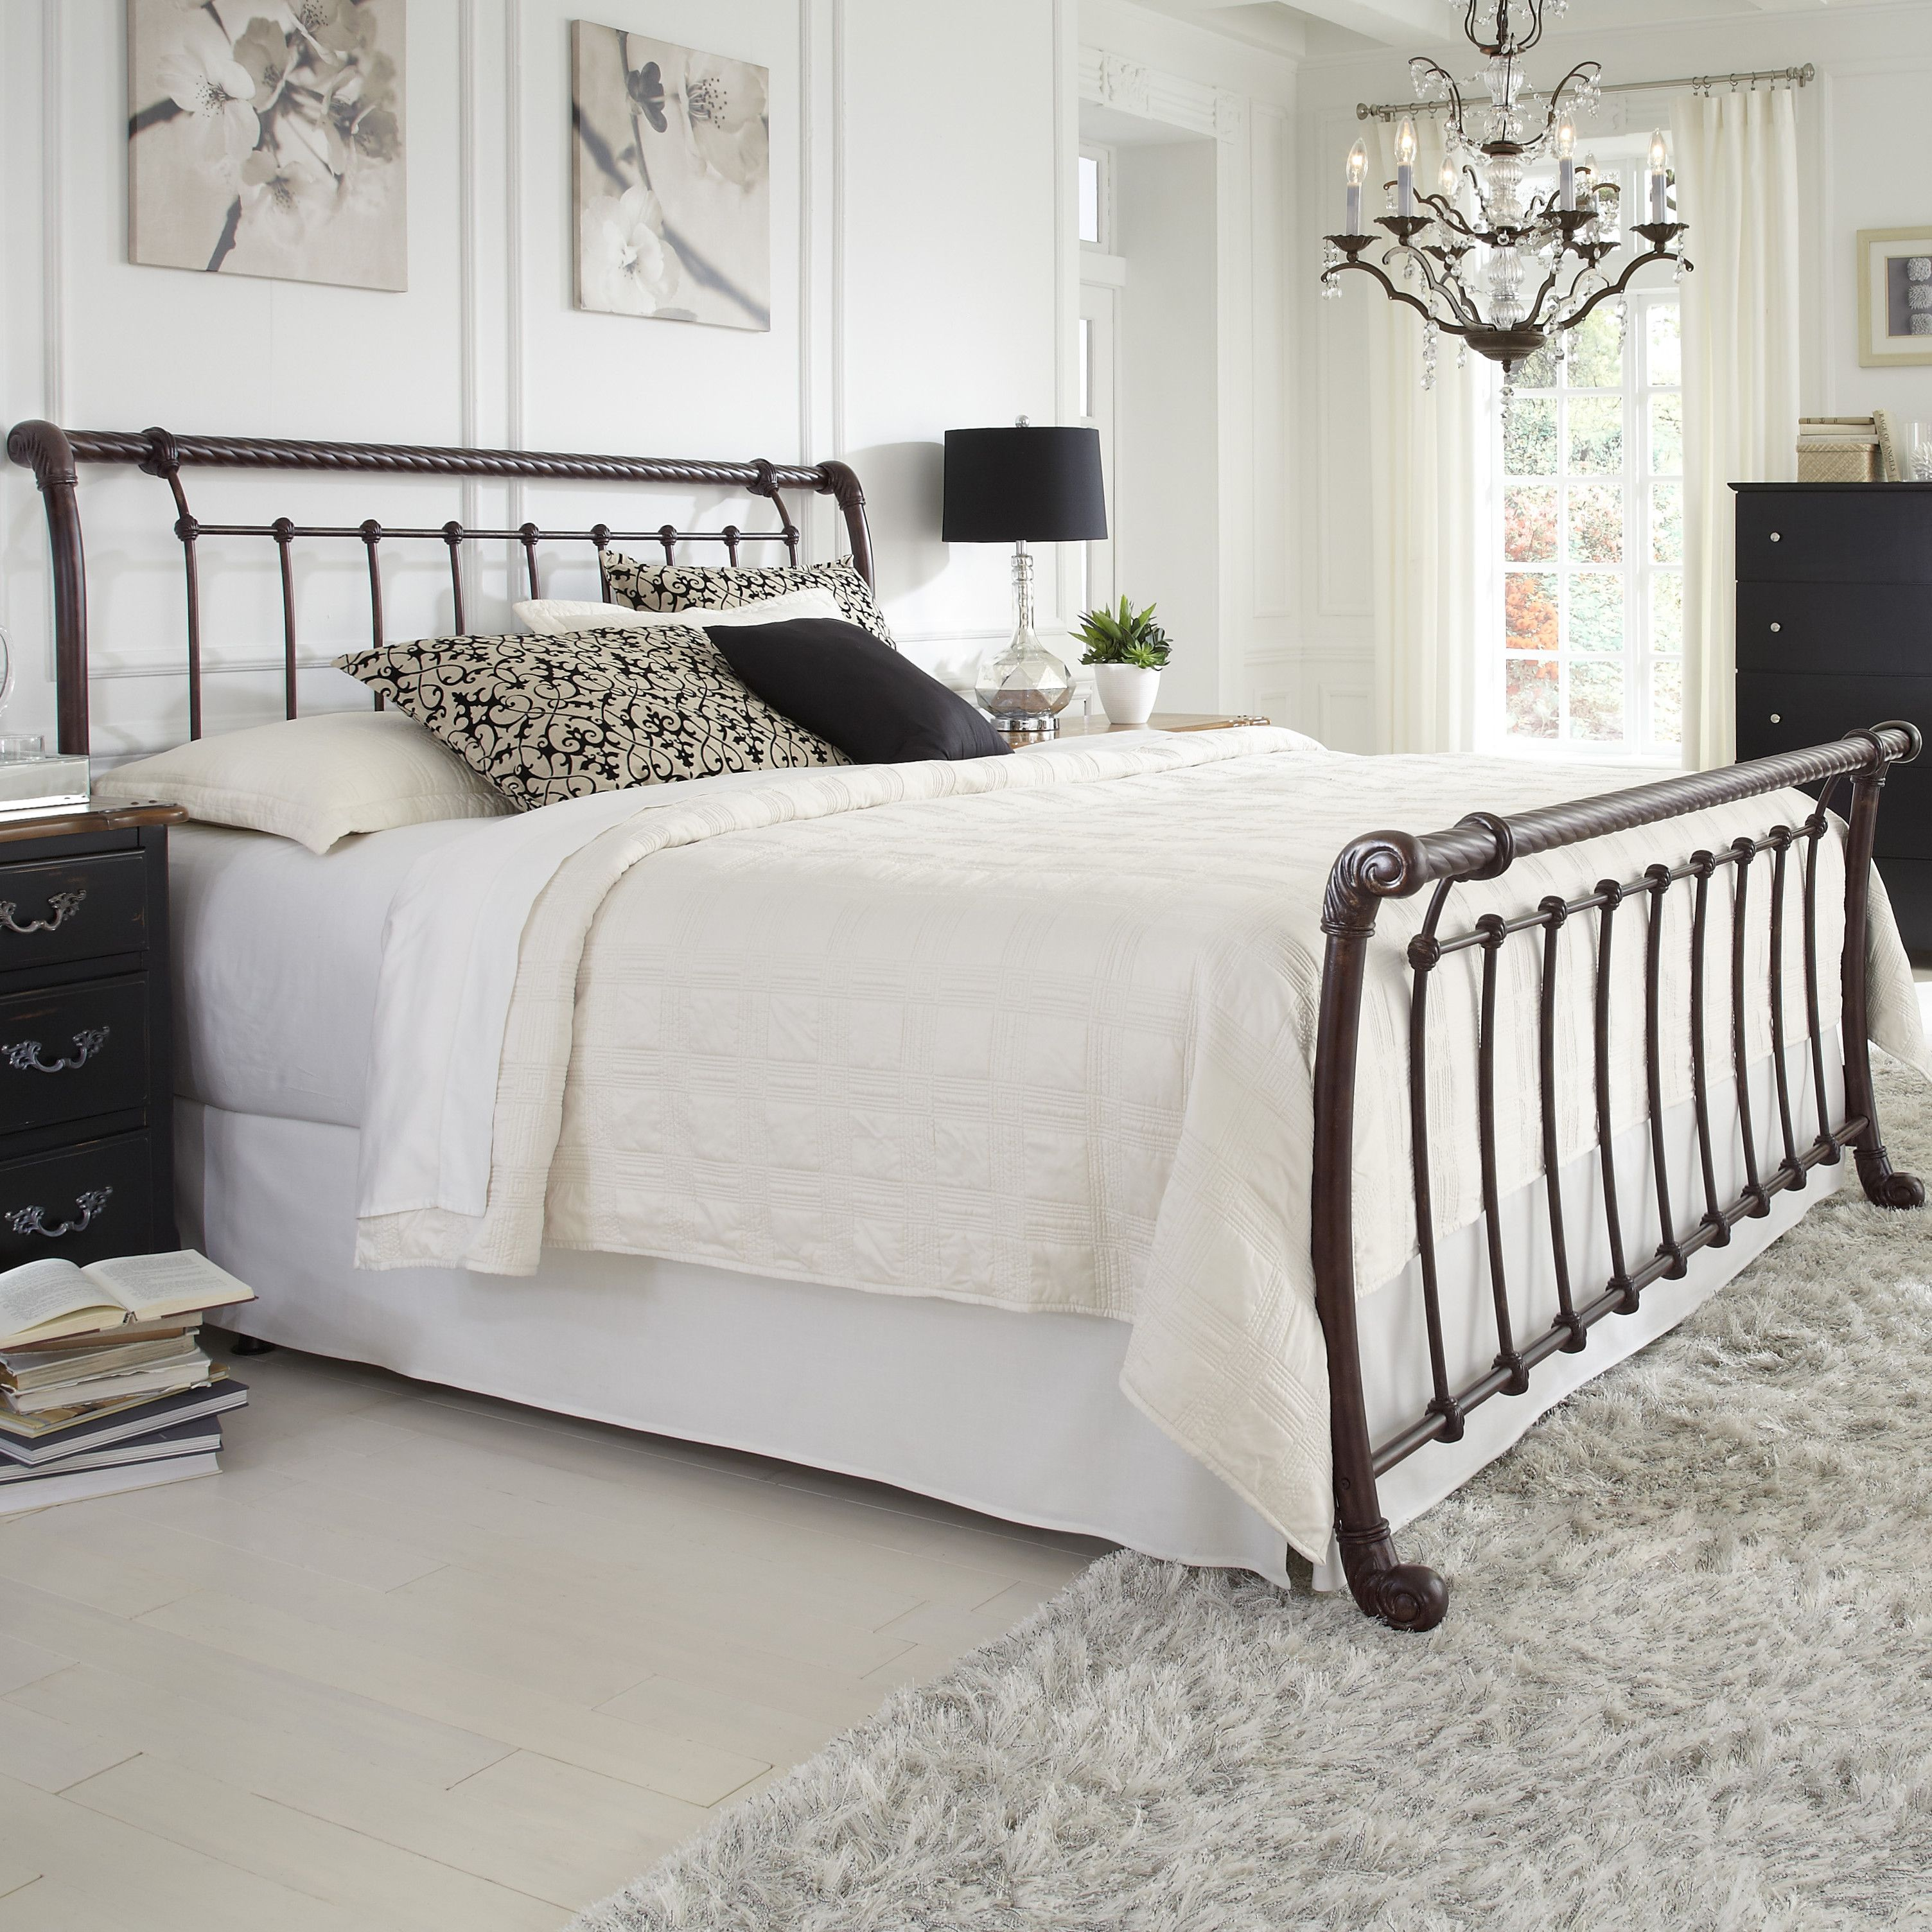 Ira Sleigh Bed Bed styling, Traditional bedroom design